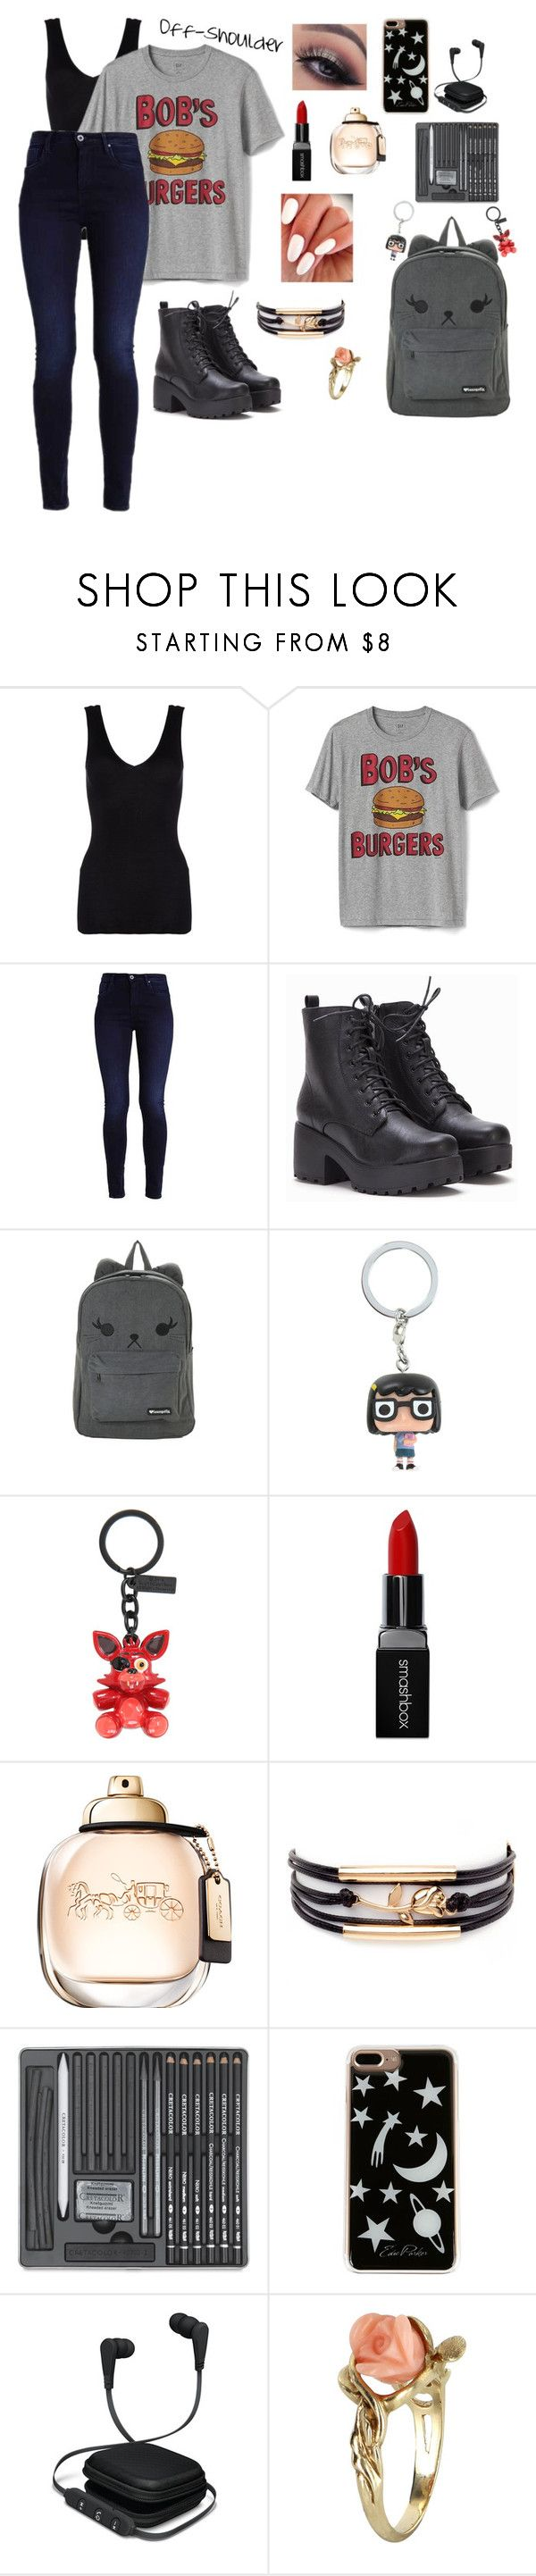 """""""Sophomore Year: Day 1~HSLS"""" by mystic-moonstone ❤ liked on Polyvore featuring Hanro, Gap, Hot Topic, Smashbox, Edie Parker, iWorld and Vintage"""